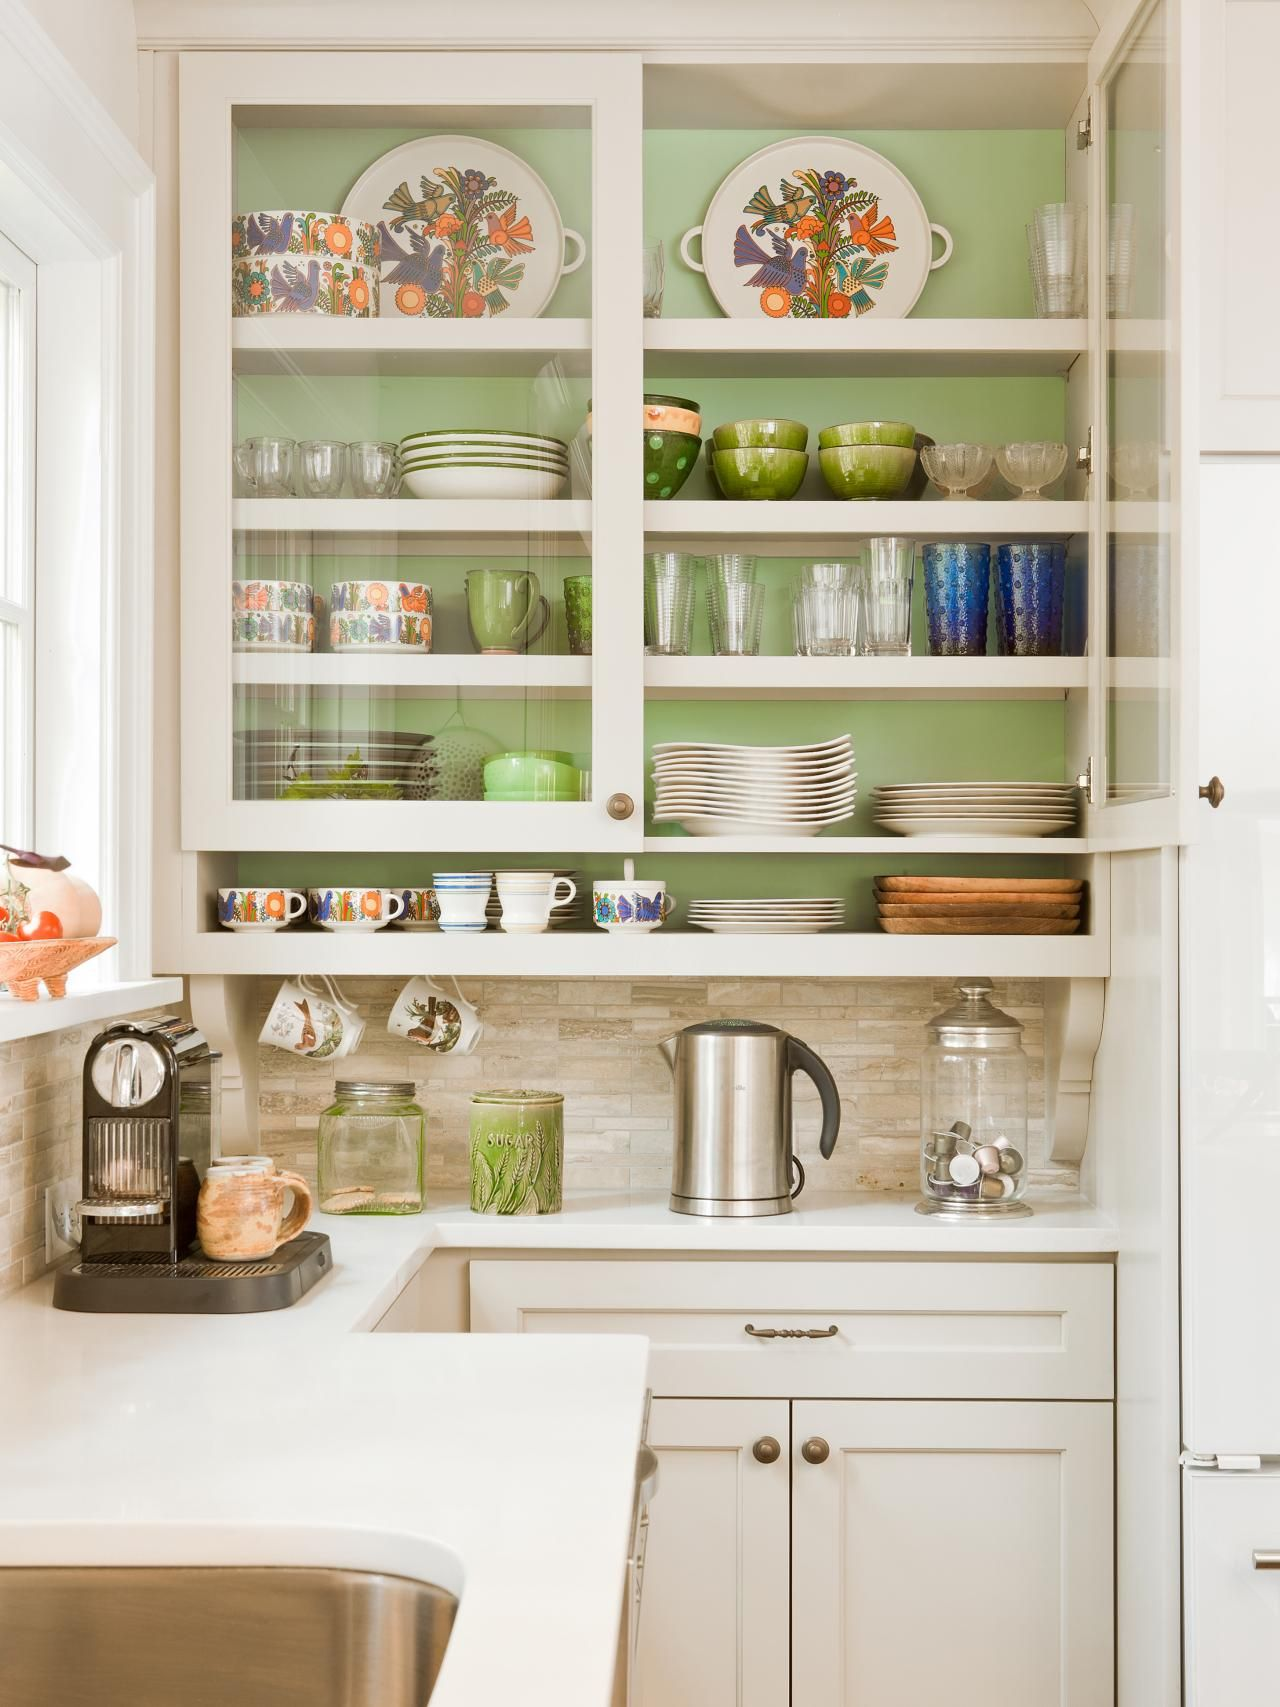 Pictures Of Colorful Kitchens Ideas For Using Color In The Kitchen Kitchen Ideas Design Wi Kitchen Cabinet Inspiration Kitchen Colors Kitchen Inspirations